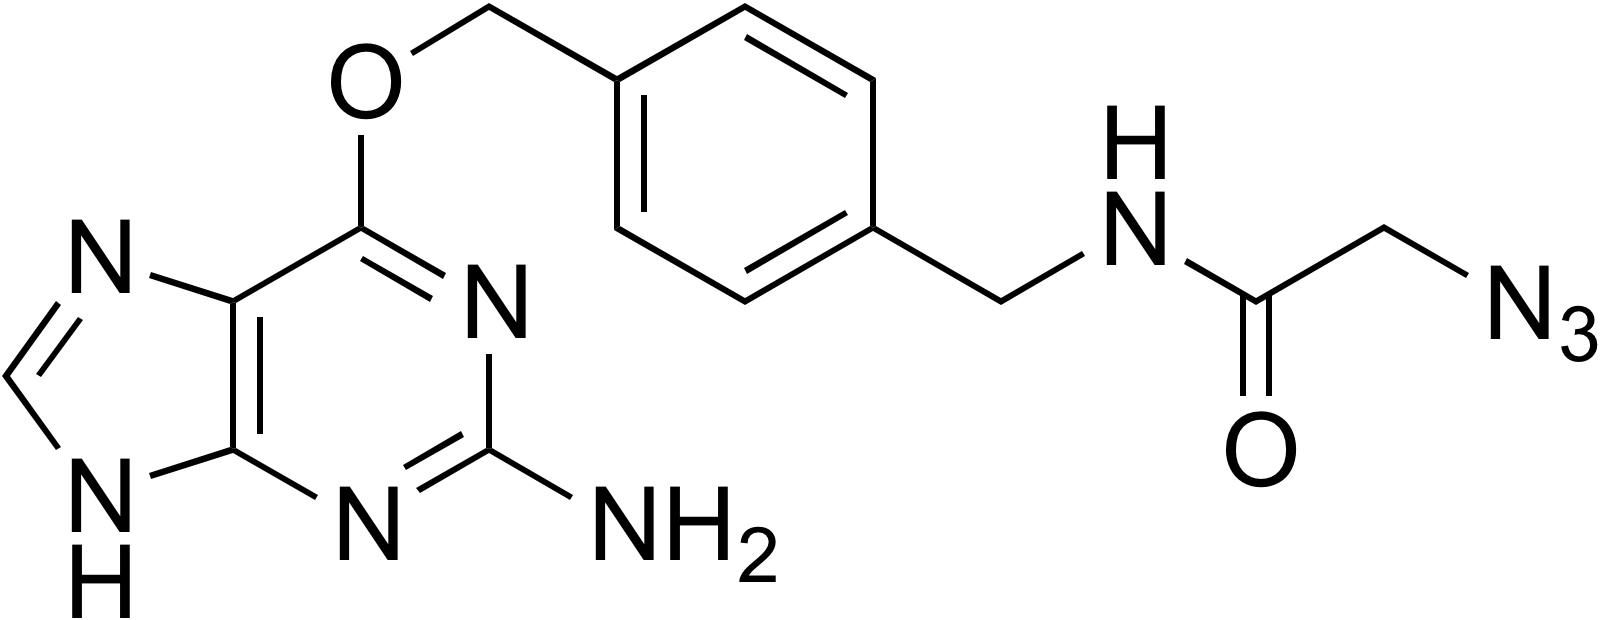 N-(4-((2-Amino-9H-purin-6-yloxy)methyl)benzyl)-2-azidoacetamide